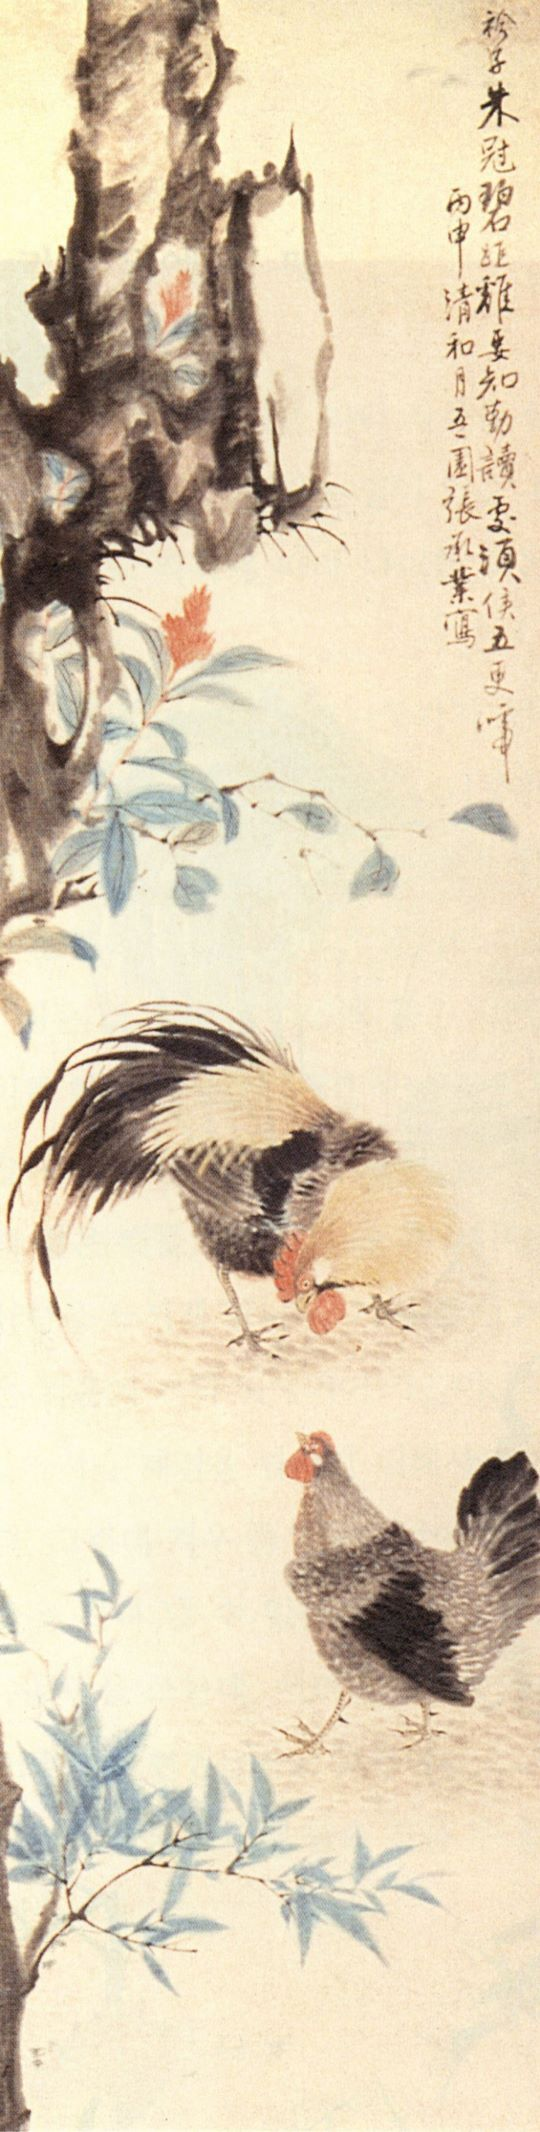 (Korea) Cock & Hen 1896 by Jang Seung-eop (1843-1897). aka Owon. Joseon Kingdom, Korea. colors on paper. Korean painting.